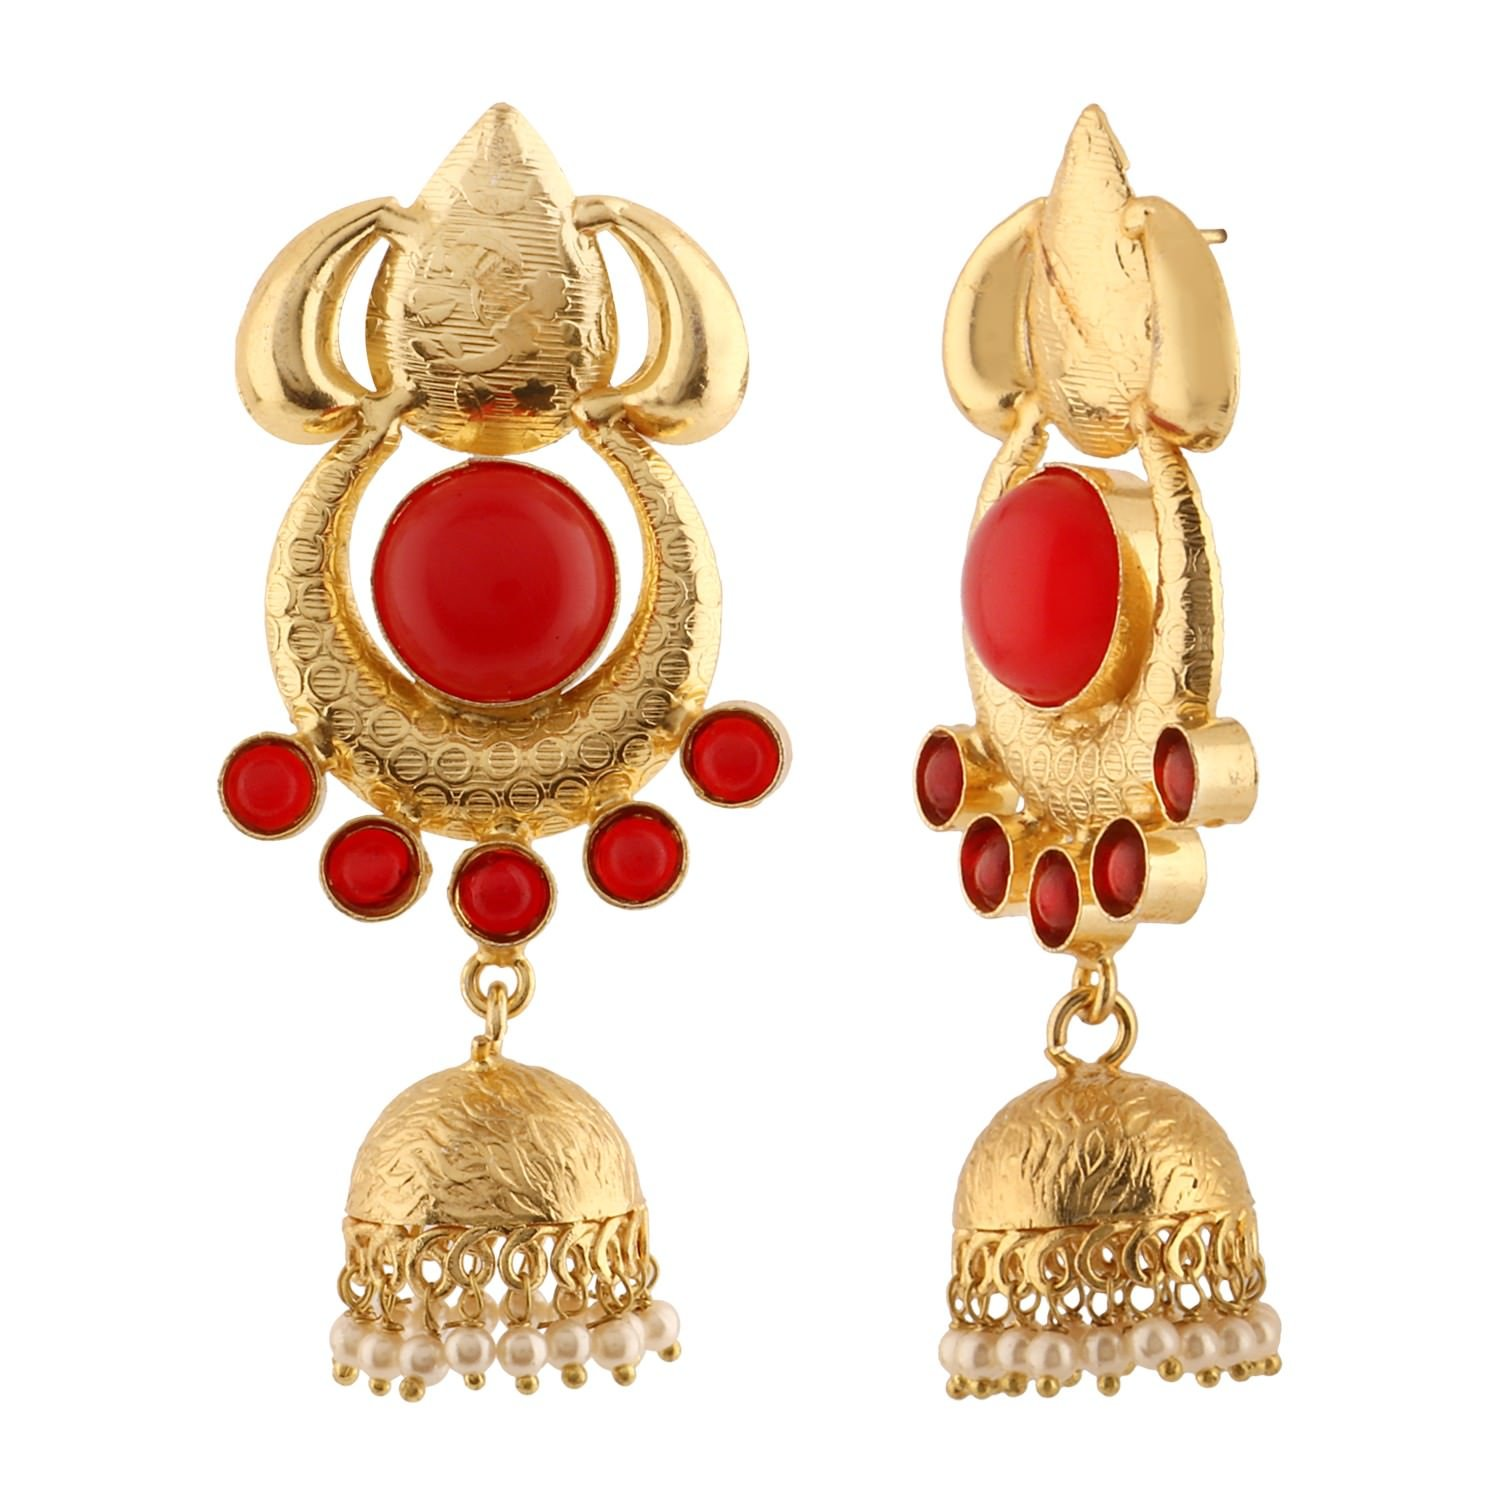 b98faf5c1 Amazon.com: Efulgenz Indian Bollywood 14K Gold Plated Turquoise Crystal  Pearl Half Moon Inspired Jhumka Jhumki Earrings Jewelry Set: Jewelry